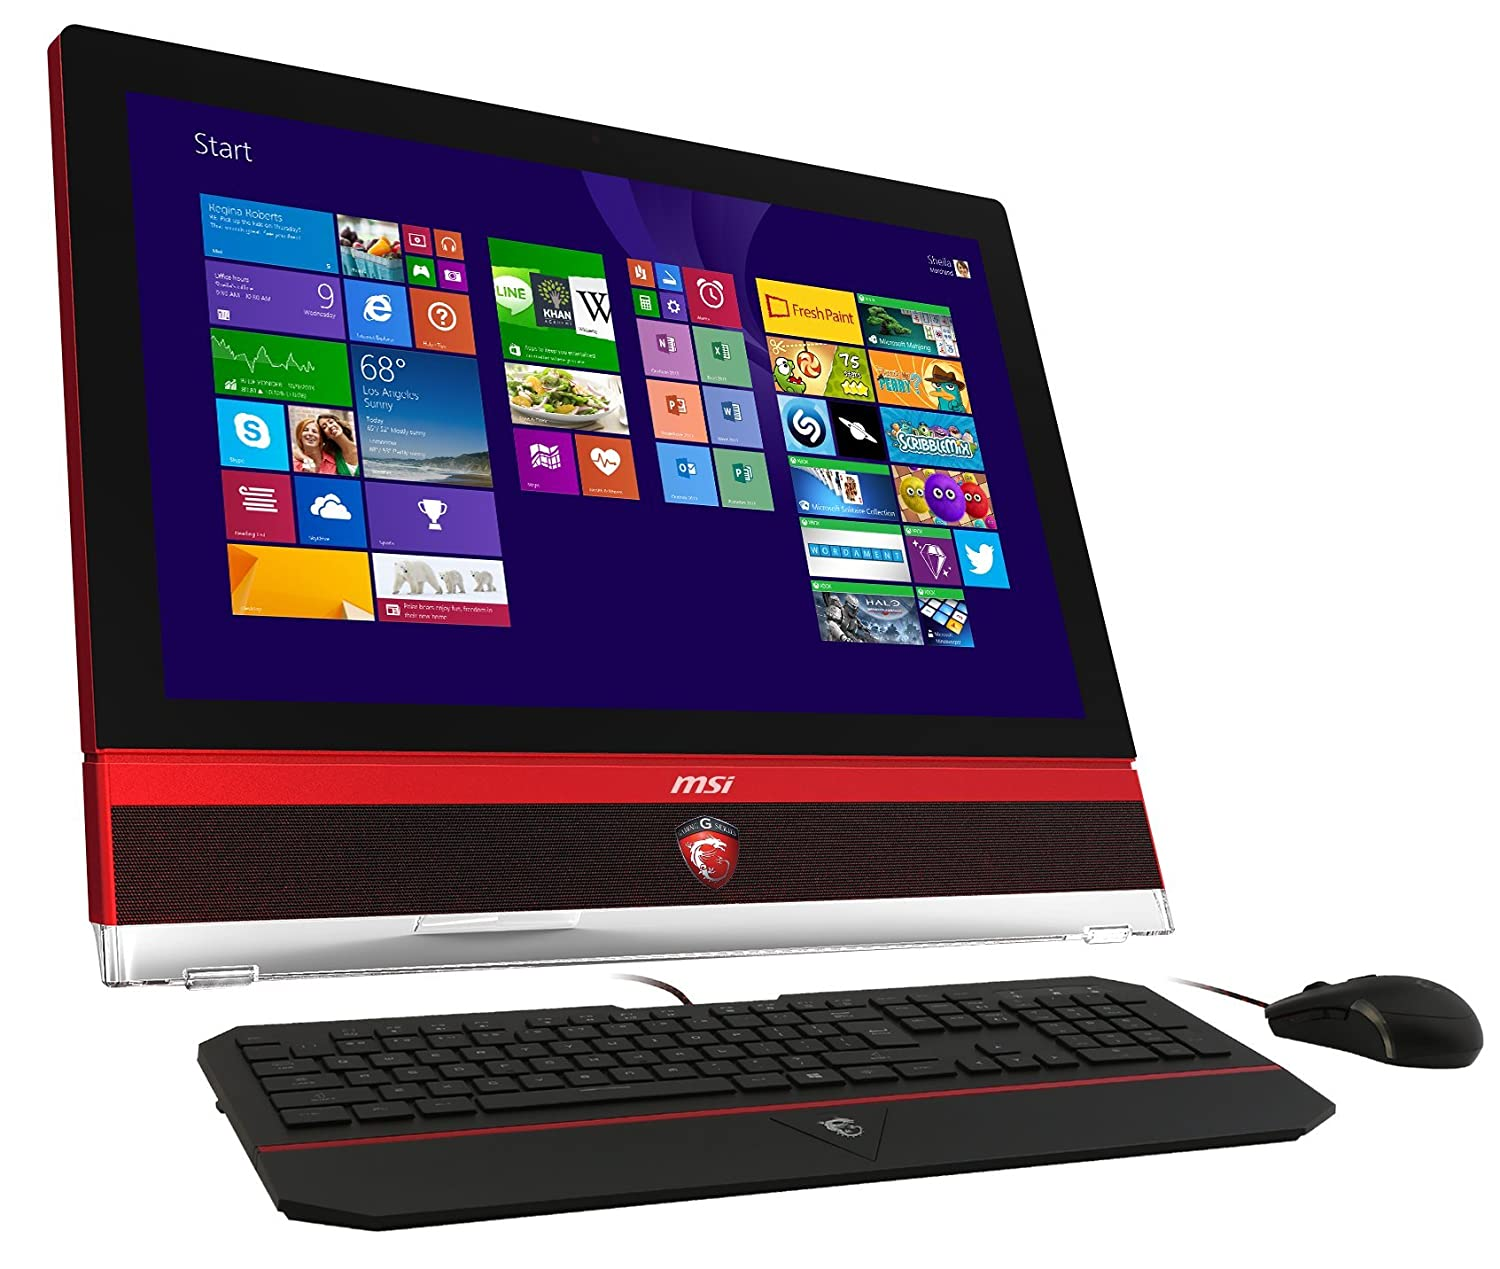 Msi G Series Ag270 2pe 004us 27 Inch All In One Touchscreen Desktop Black Red Trim